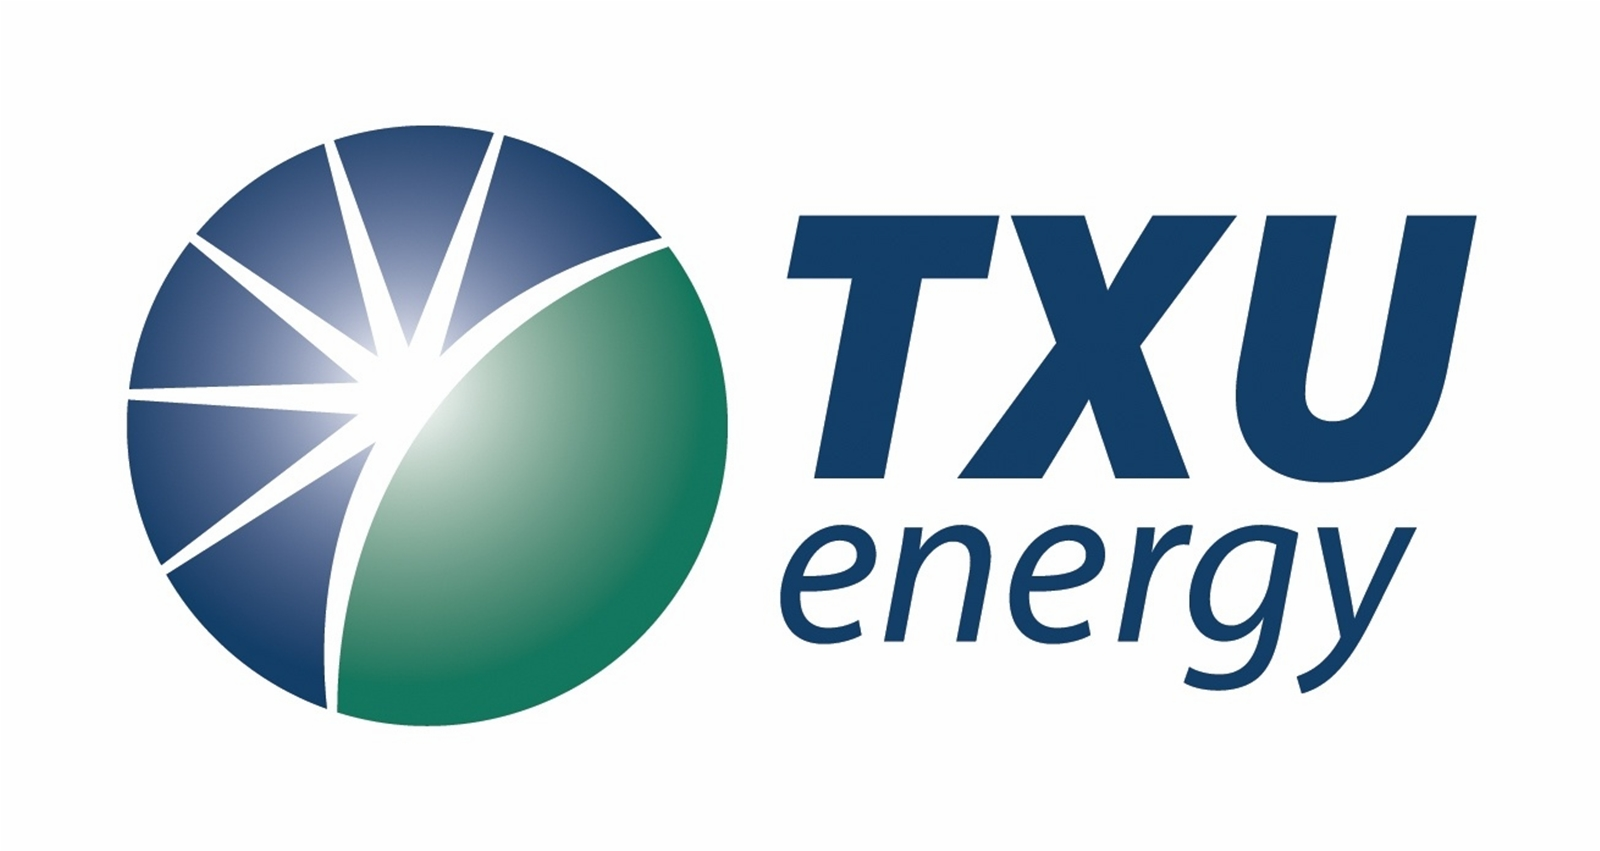 View Electricity Plans, Rates & Offers. Are you already a TXU Energy customer? * No; Yes Cancel.